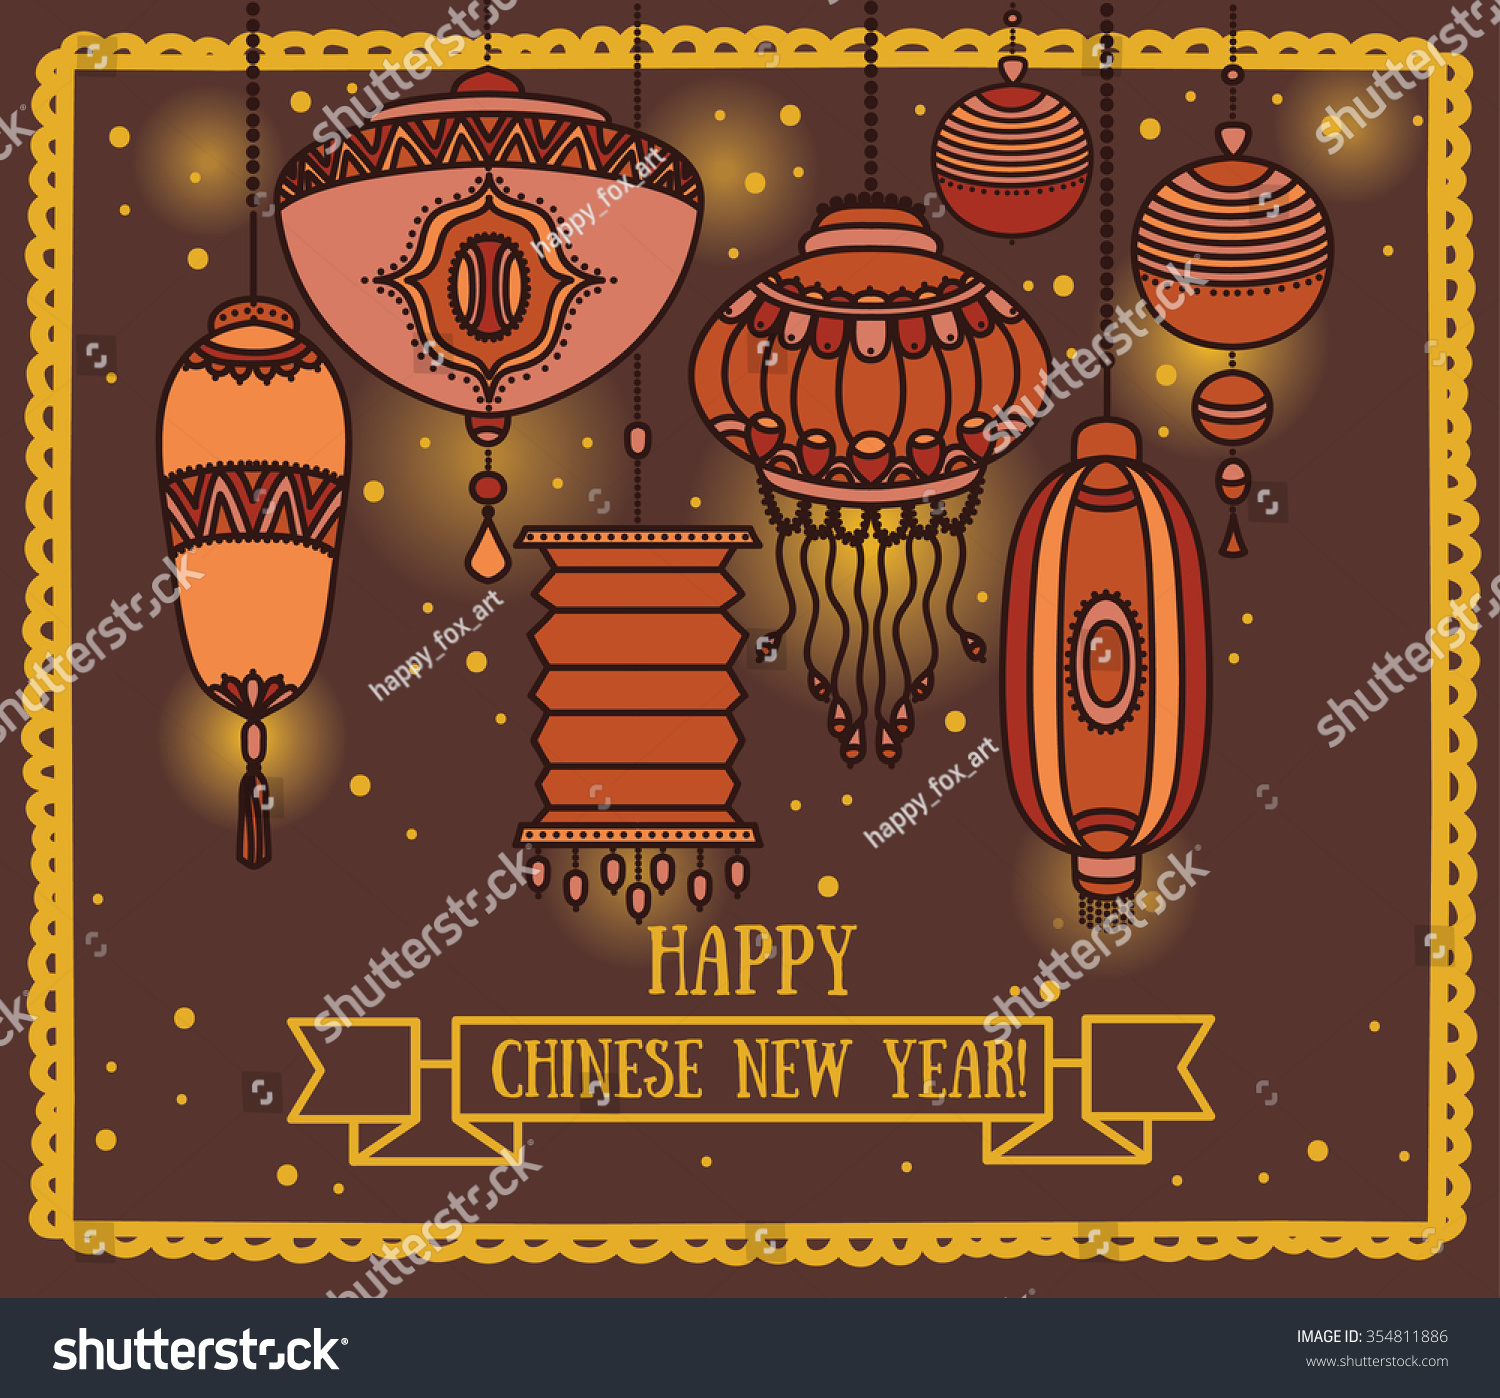 Greeting Card Chinese New Year Lantern Stock Vector Royalty Free